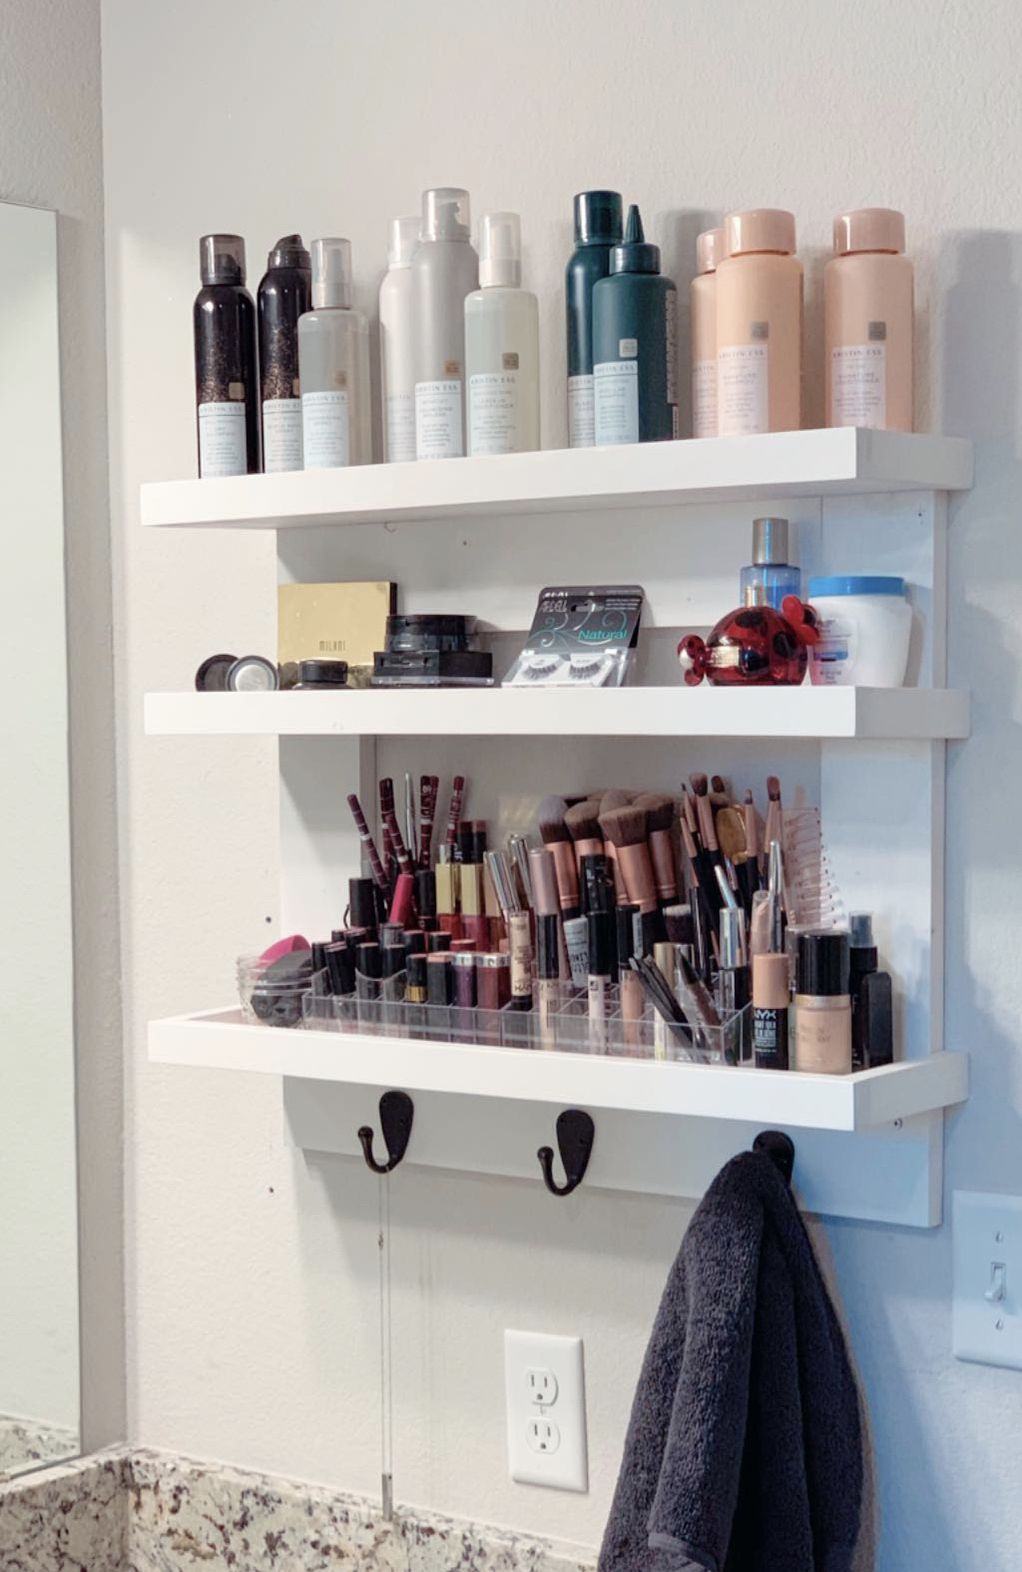 Diy Makeup Hair Care Wall Shelf And Shelving With Hooks Makes Great Bathroom Storage When You Do Bathroom Wall Storage Diy Bathroom Decor Diy Bathroom Storage